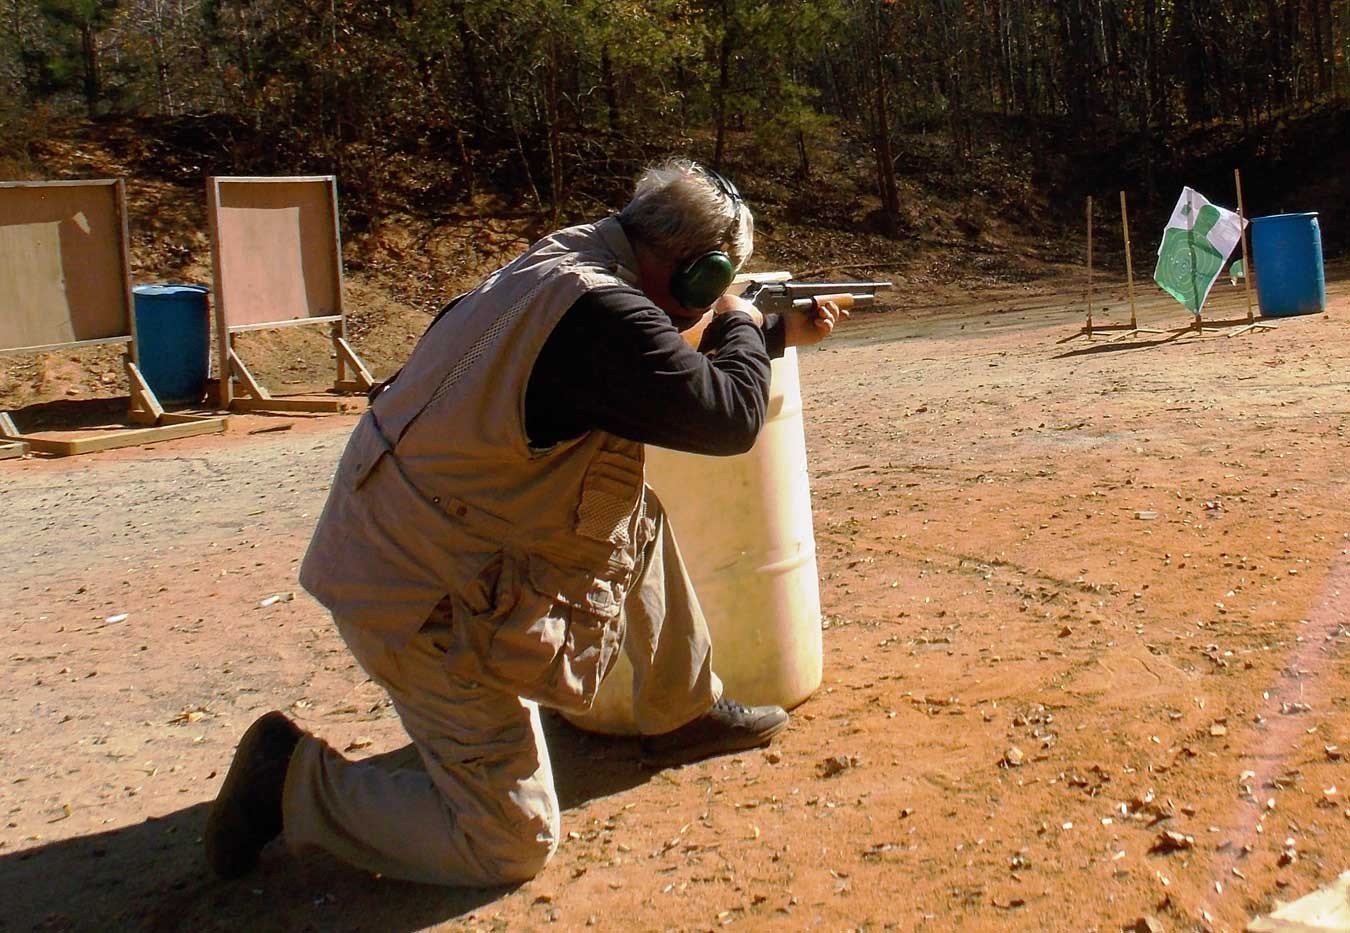 Bob Campbell shooting a shotgun from behind a barricade